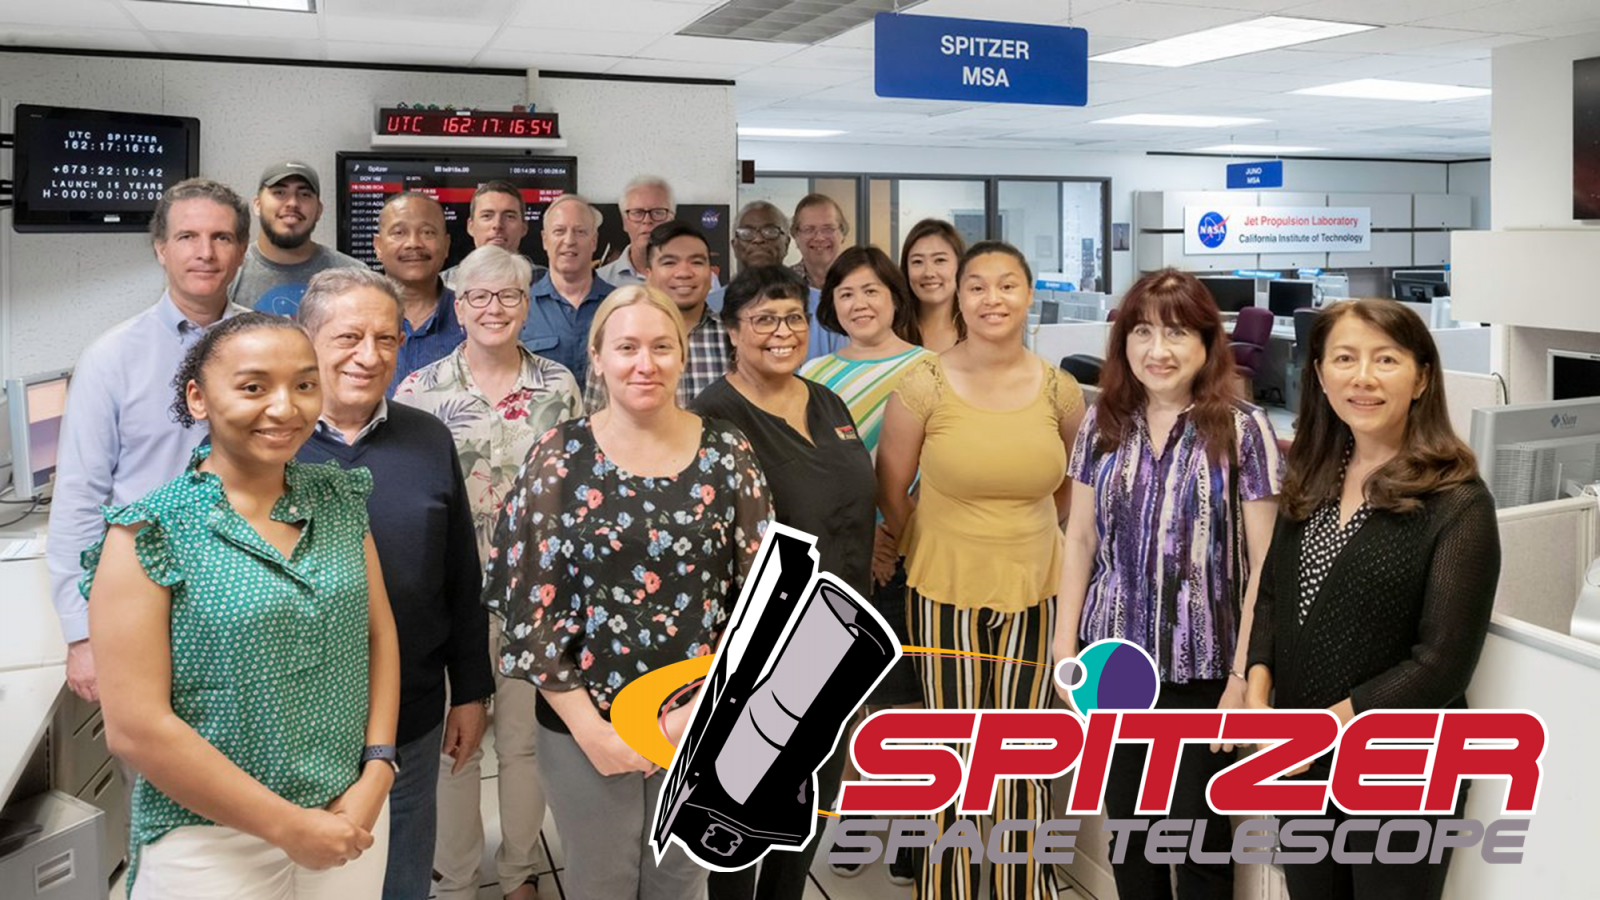 Members of the Spitzer engineering team pose in the mission support area. Front row (left to right): Natalie Martinez-Vlashoff, Jose Macias, Lisa Storrie-Lombardi, Amanda Kniepkamp, Bolinda Kahr, Mariah Woody, Socorro Rangel, May Tran. Middle: Pedro Diaz-Rubin, Joseph Hunt, John Ibanez, Laura Su, Nari Hwangpo. Back row: Michael Diaz, Adam Harbison, Richard Springer, Joe Stuesser, Ken Stowers, Dave Bliss. Not pictured: Bob Lineaweaver, Jason Hitz and Walt Hoffman. Photo Credit: NASA/JPL-Caltech